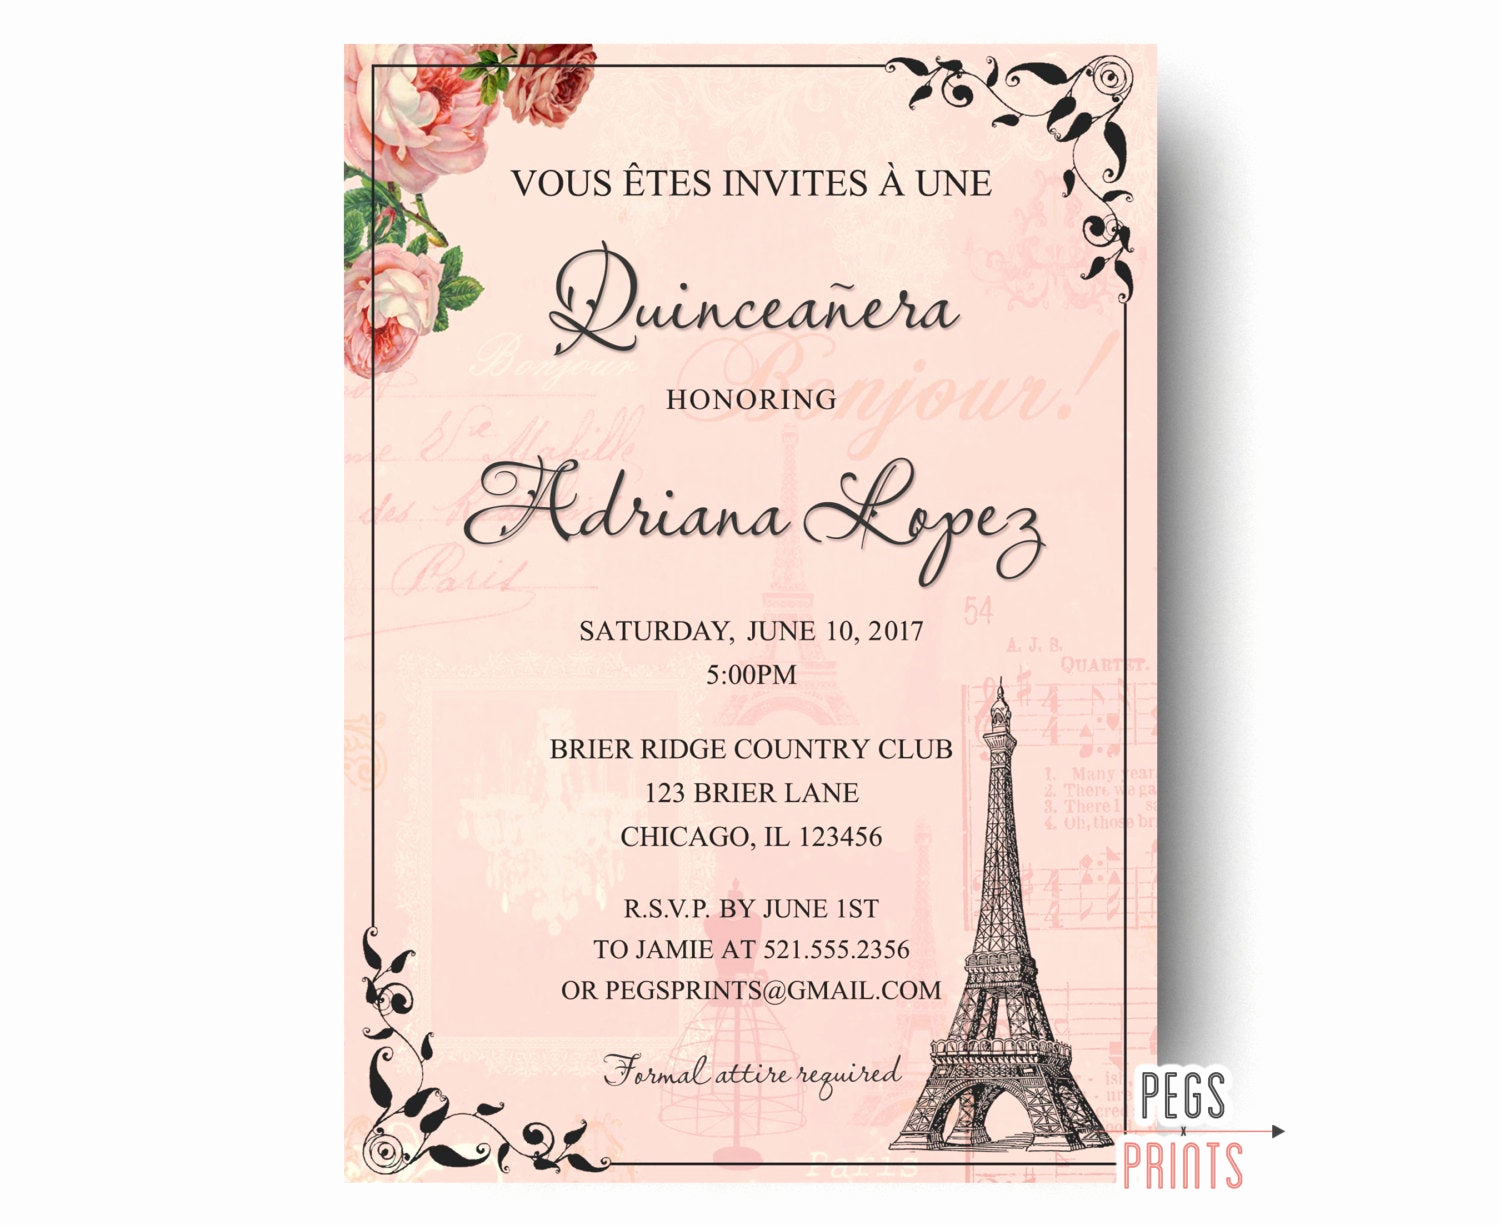 Quinceanera Invitation Wording Spanish Elegant Paris Quinceanera Invitation Quinceanera Invitation